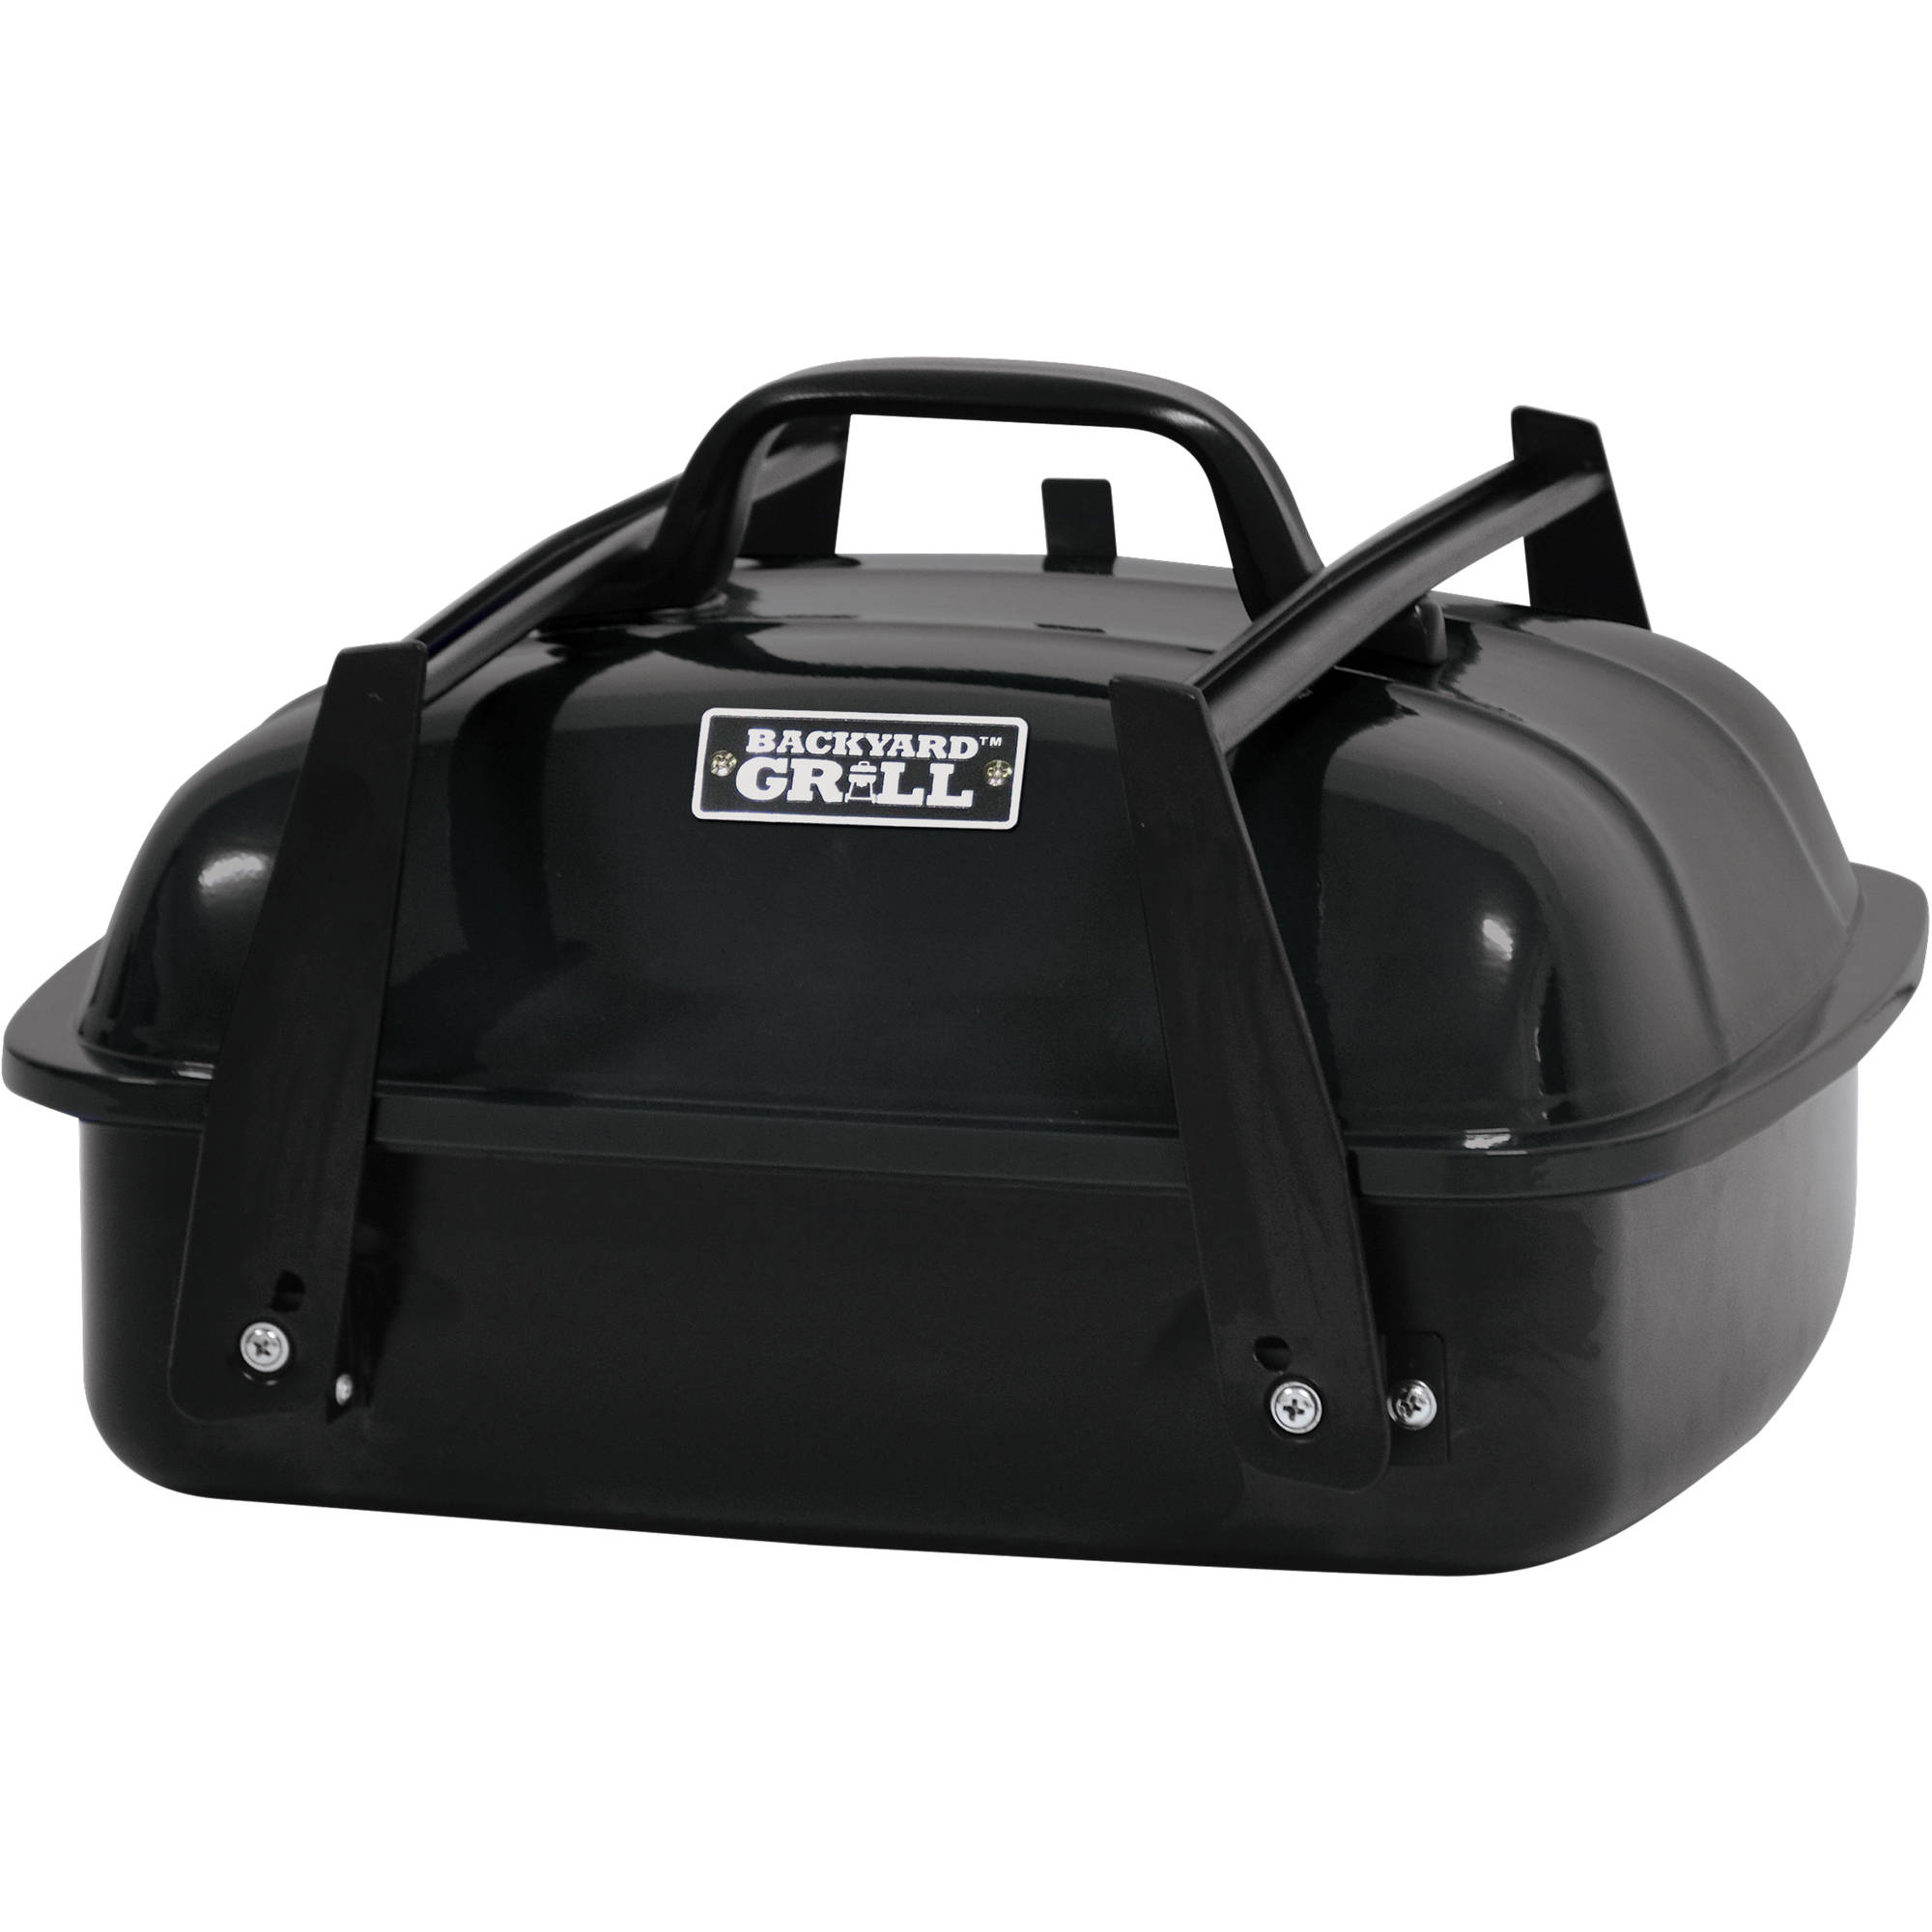 "Backyard Grill 12"" Portable Charcoal Grill"